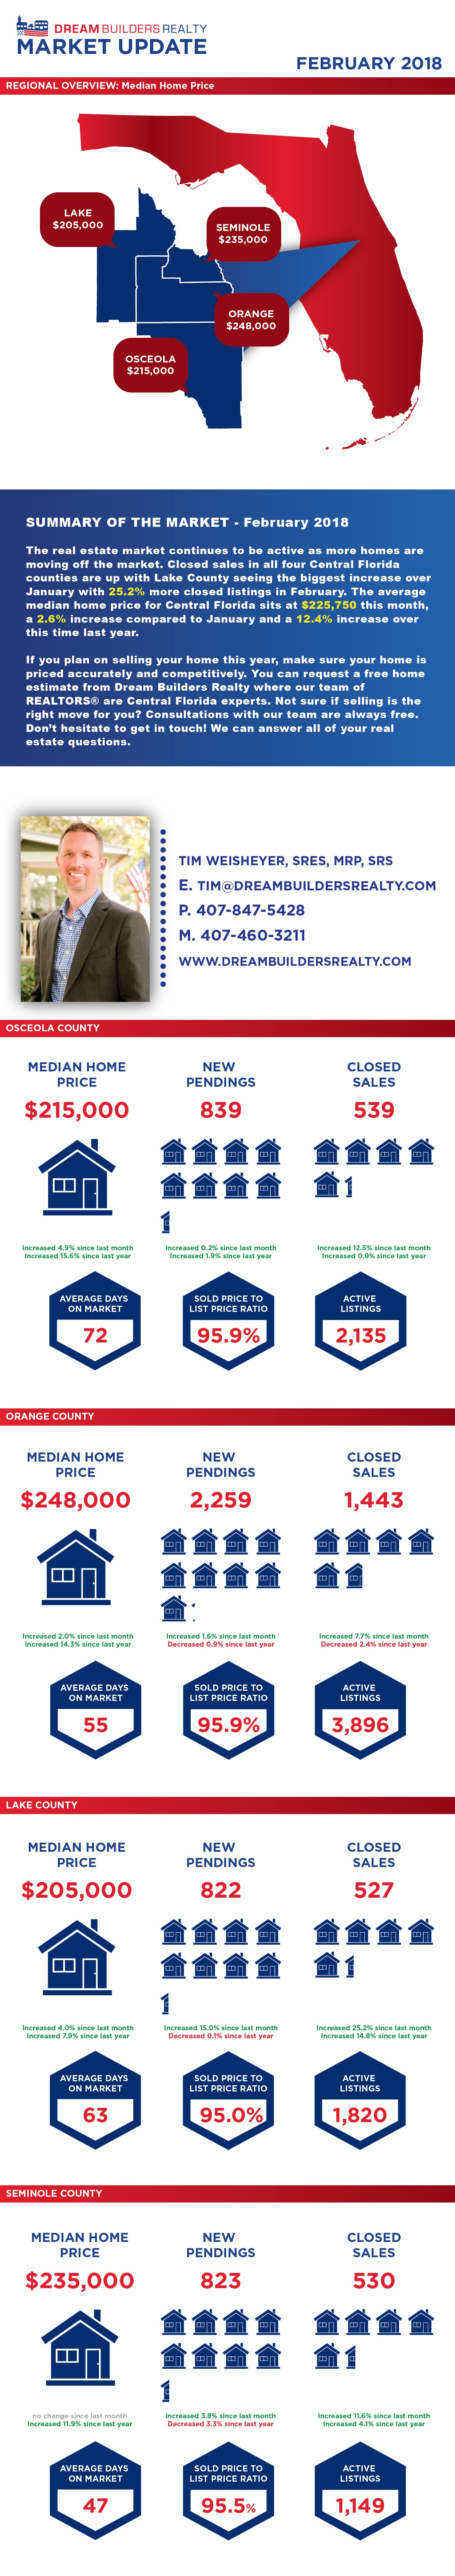 Central Florida Real Estate Market Data as of February 2018 from Dream Builders Realty